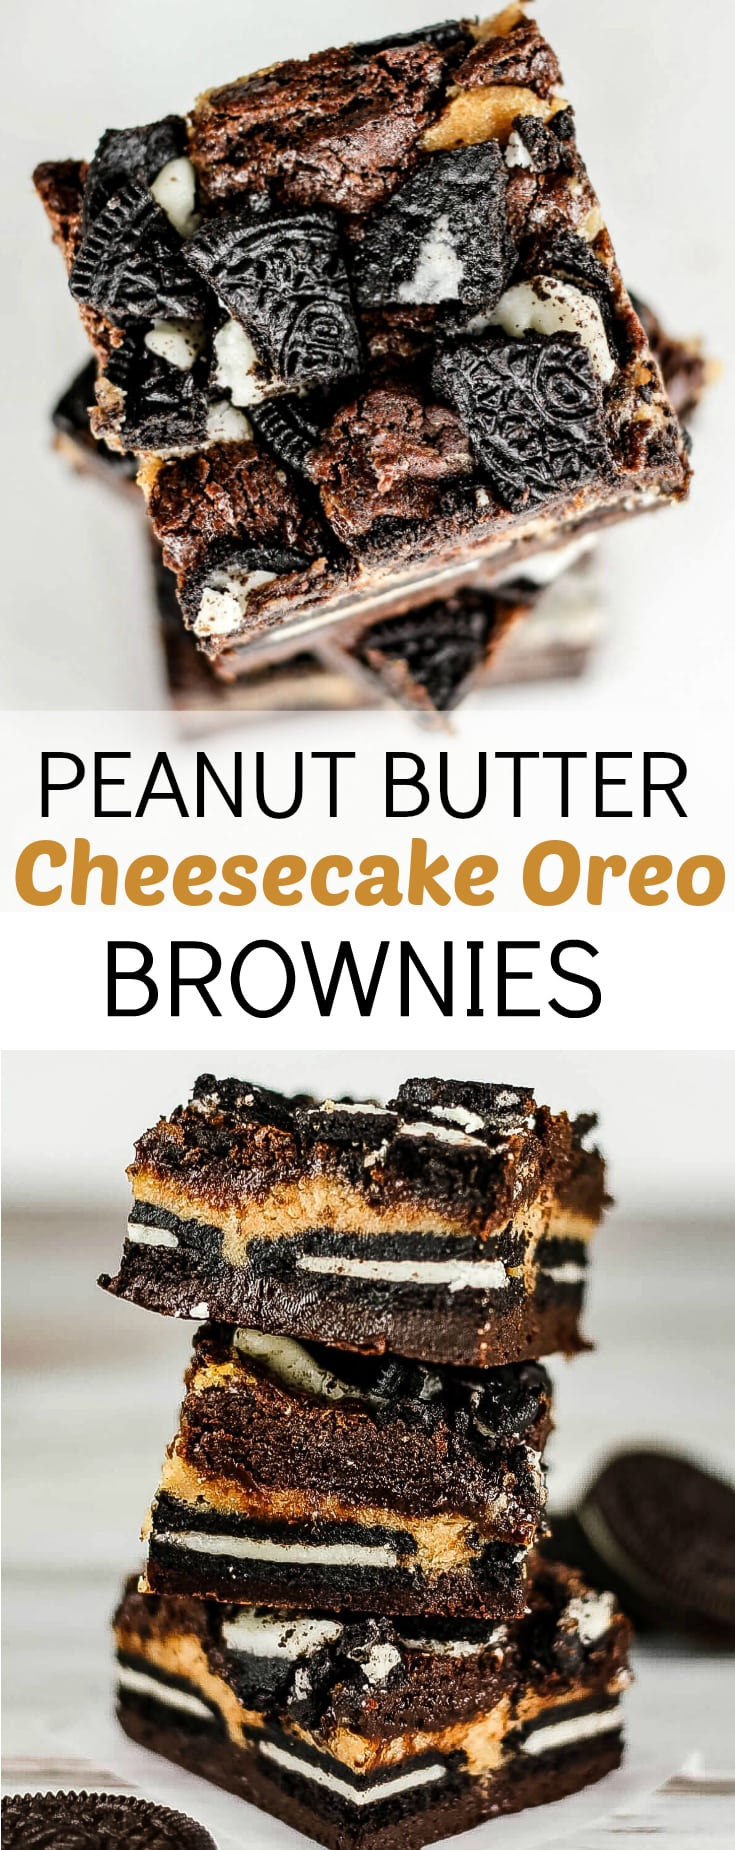 hese peanut butter cheesecake Oreo brownies have five layers of brownie, cheesecake, and cookies. And they promise to be out of this world good!